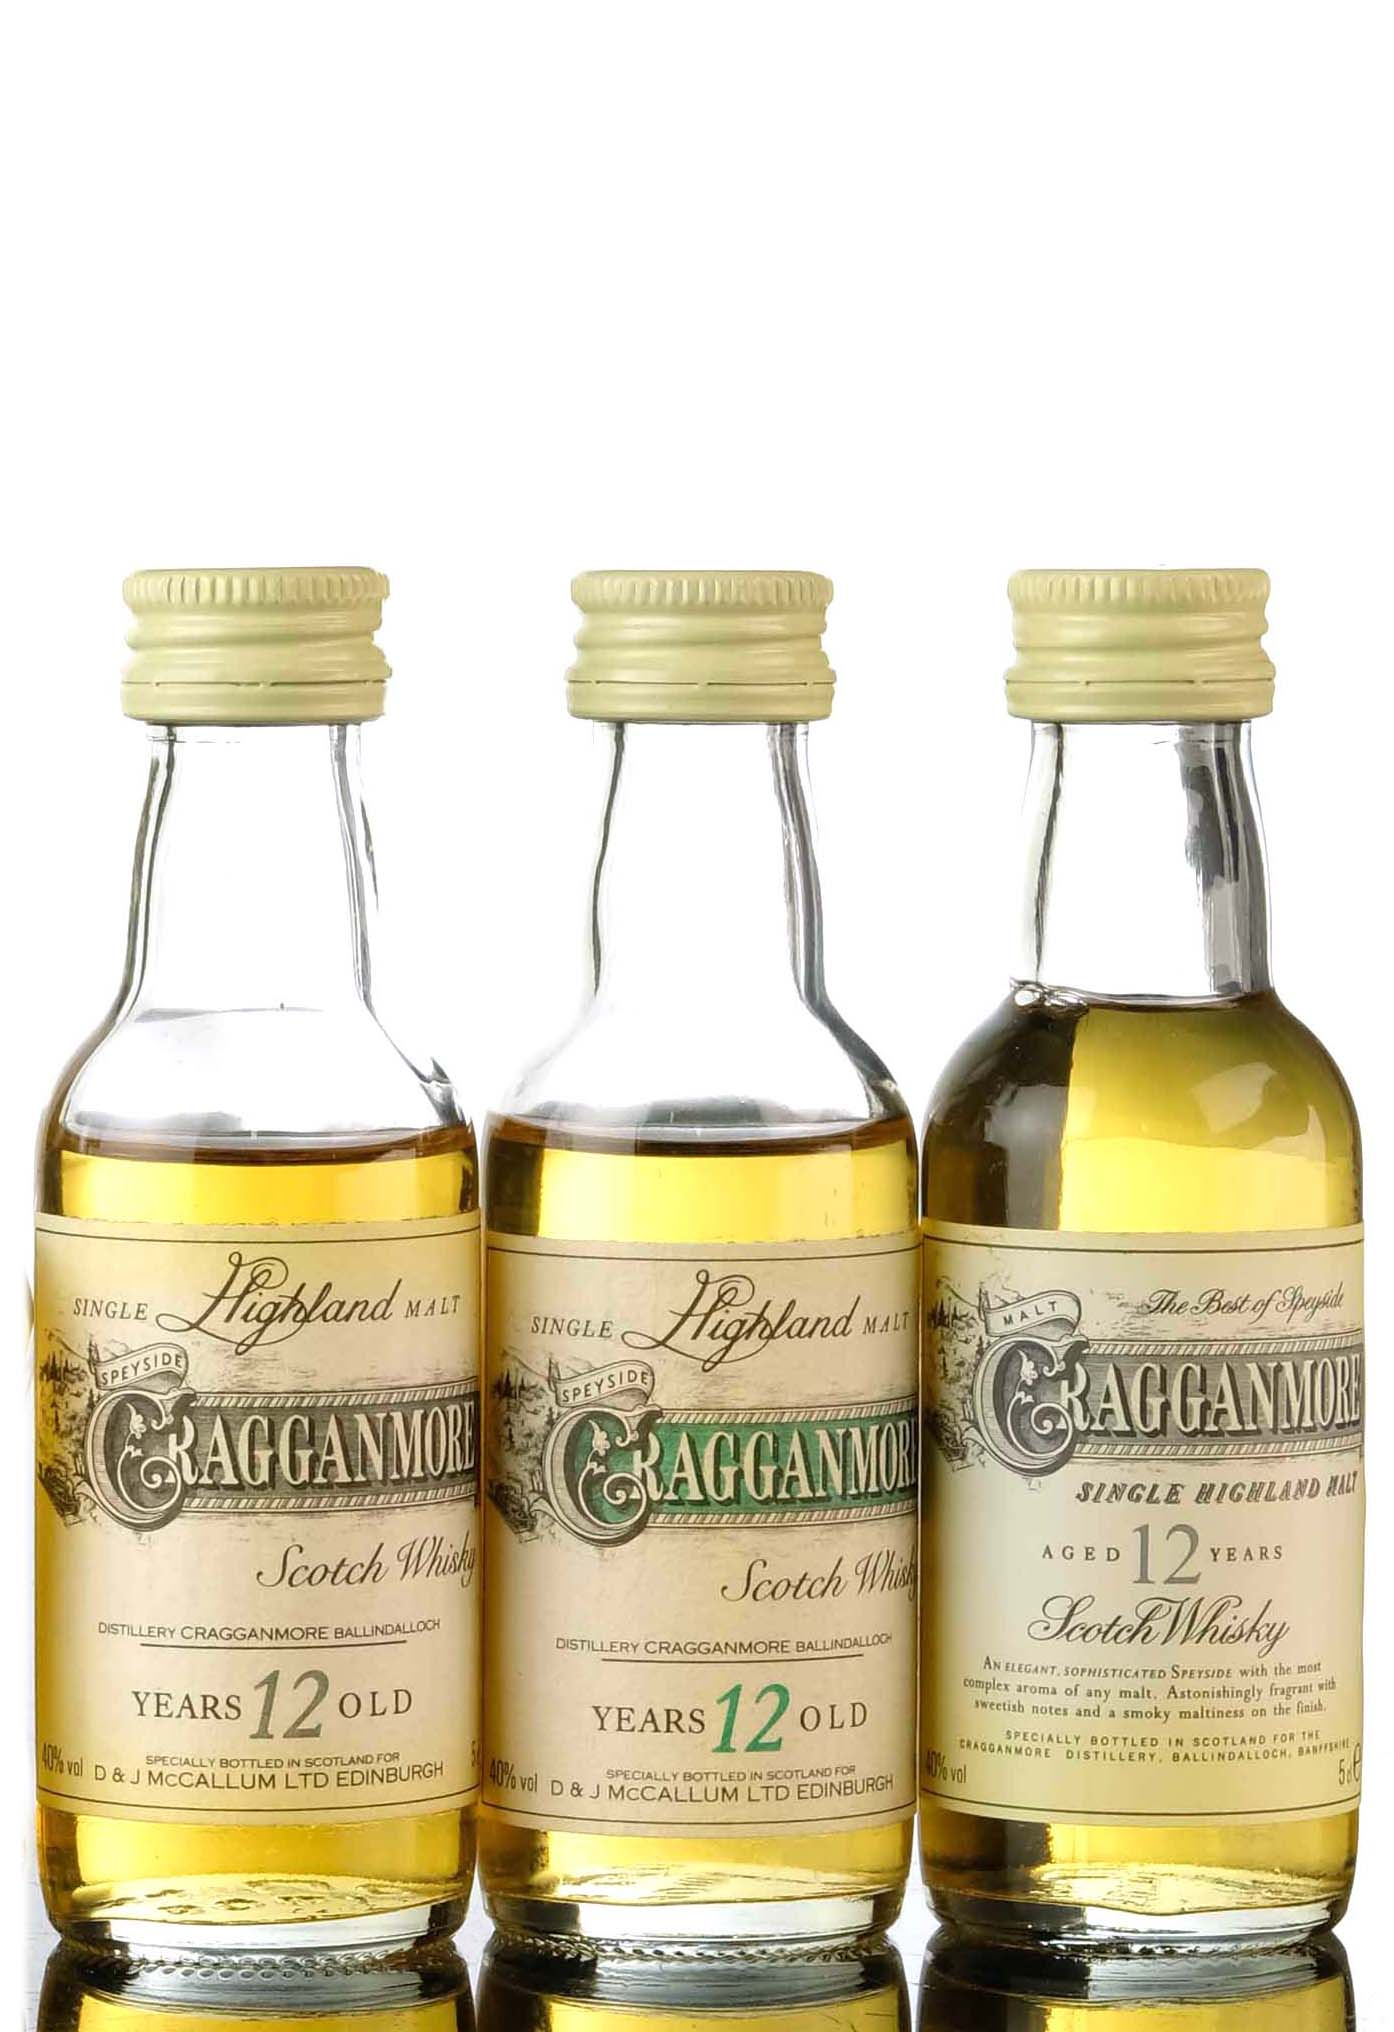 3 x cragganmore 12 year old miniatures